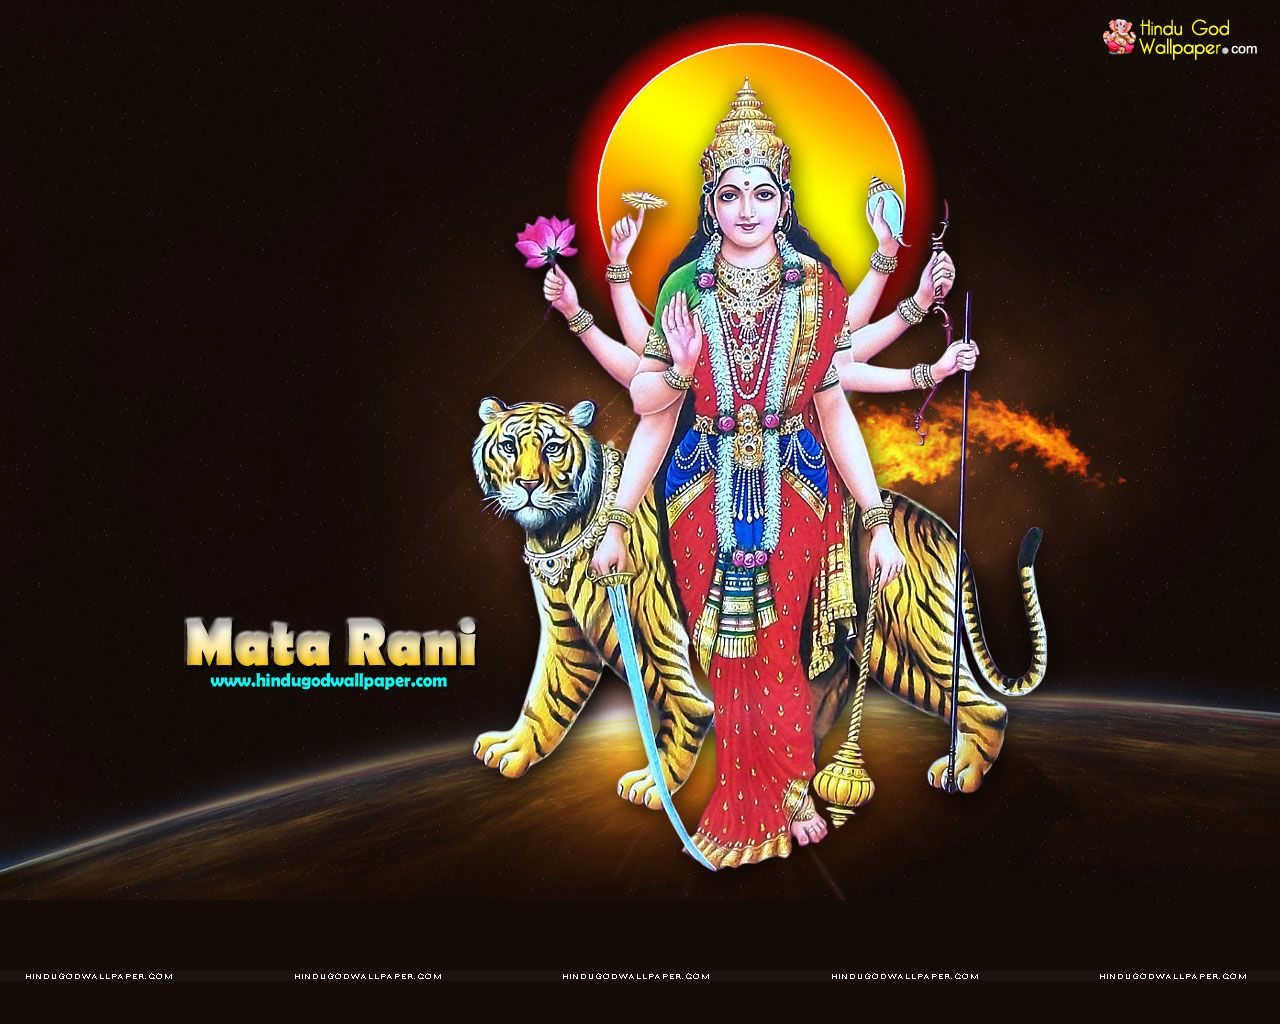 Wallpaper download mata rani - Mata Rani Wallpapers Free Download